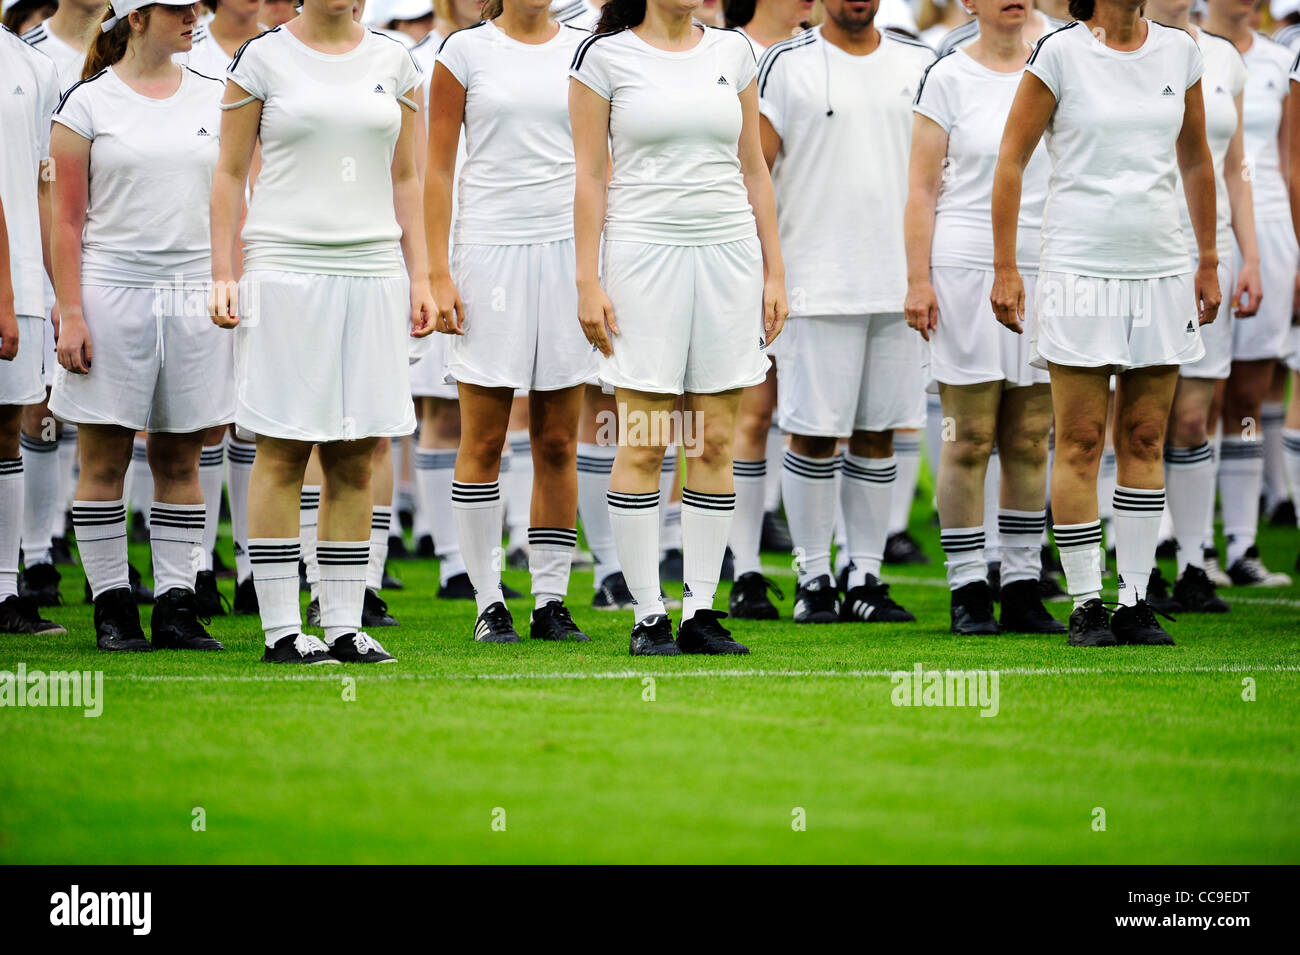 group of teenagers dressed in white during pe-match show of football match - Stock Image